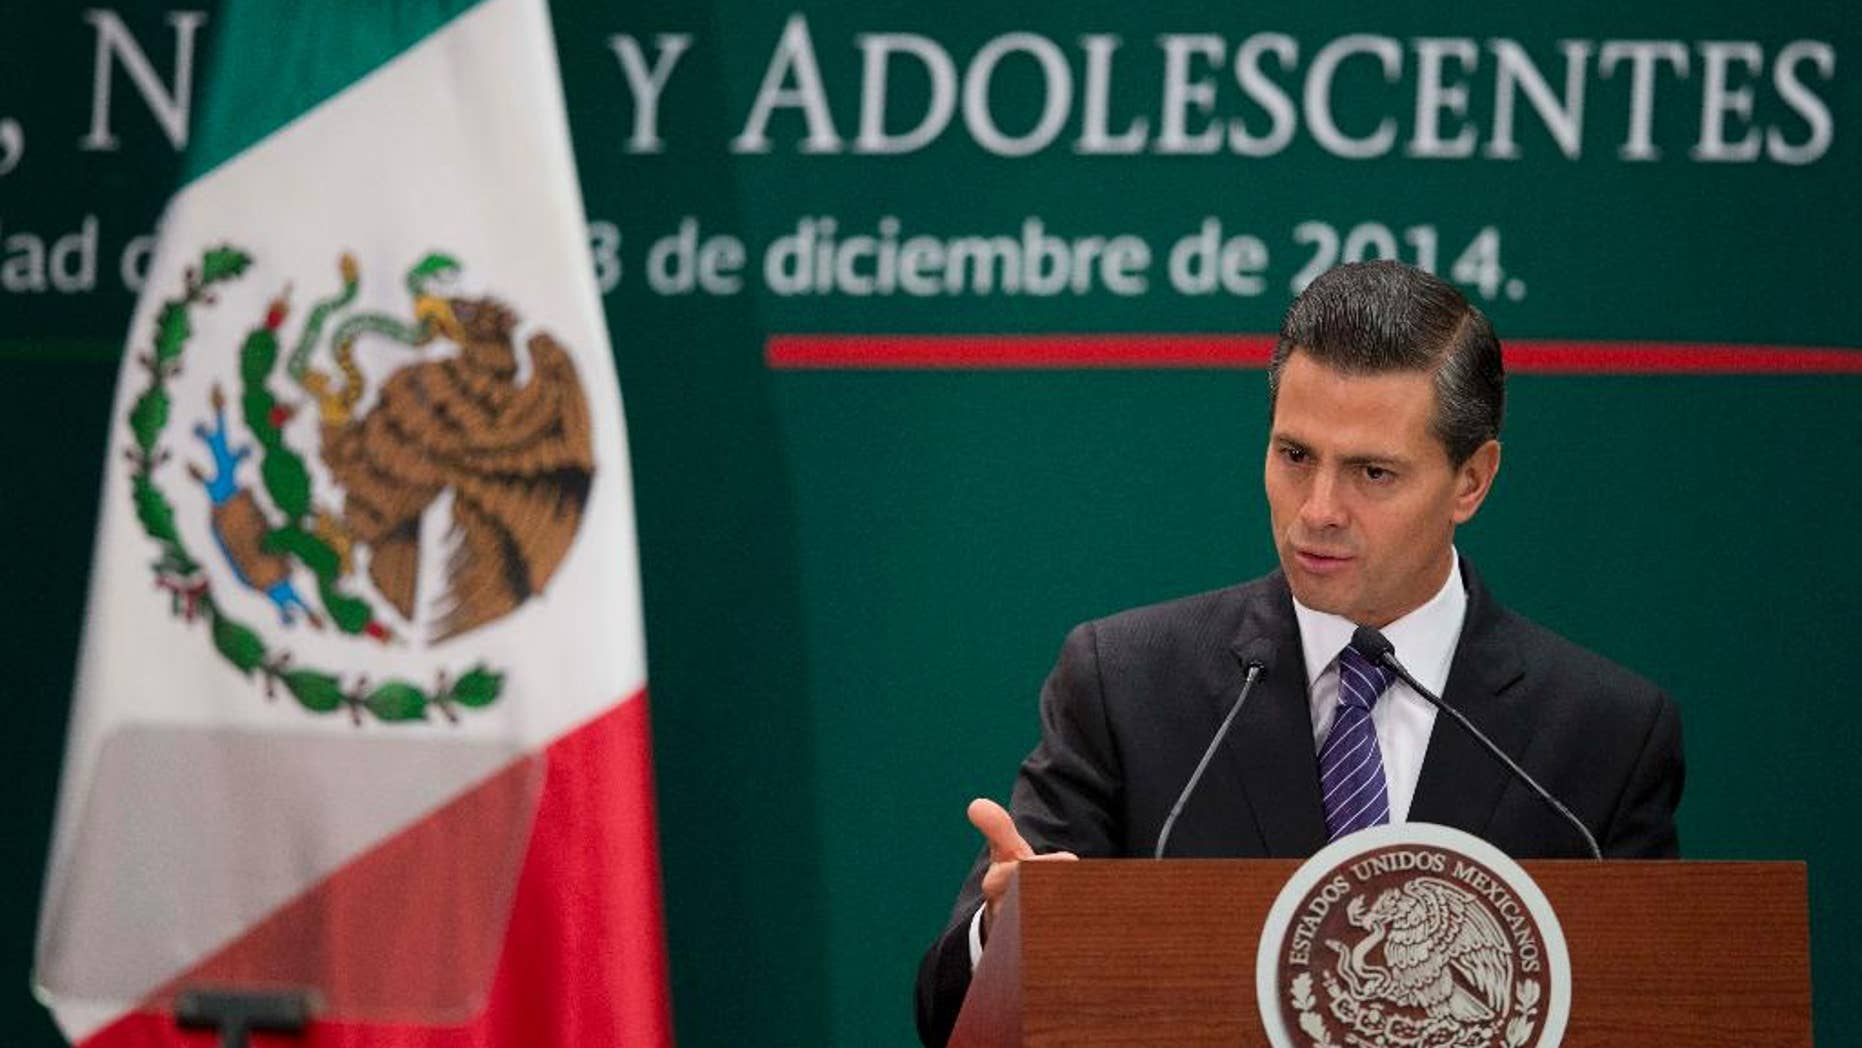 Mexican President Enrique Pena Nieto speaks during a signing ceremony for a new law that further protects children at Los Pinos presidential residence in Mexico City, Wednesday, Dec. 3, 2014. (AP Photo/Eduardo Verdugo)